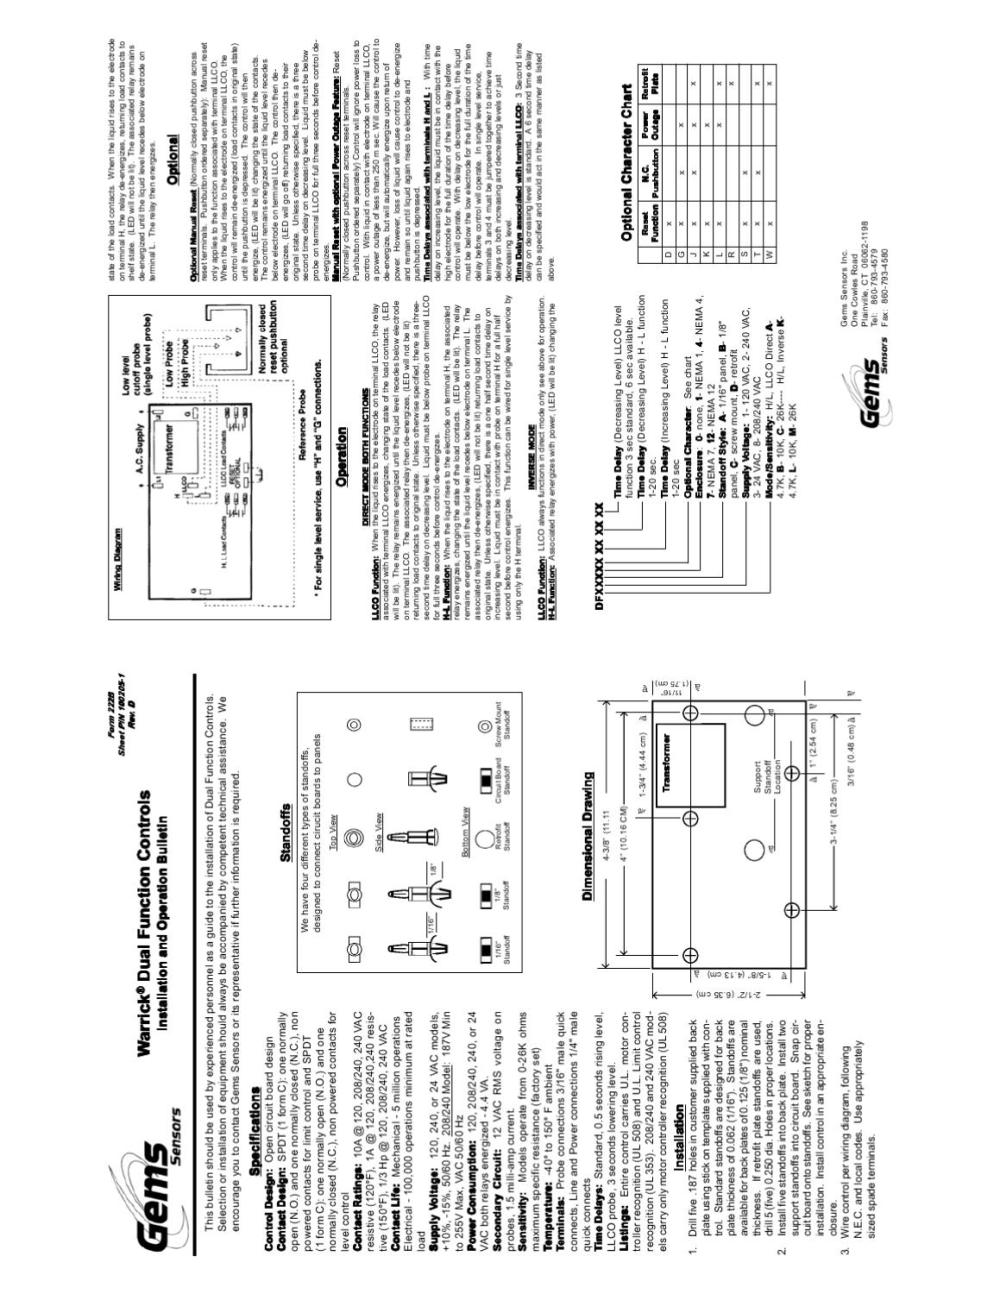 medium resolution of ajax boiler wiring diagram wiring diagrams schema home boiler fire sensor wiring ajax boiler wiring diagram